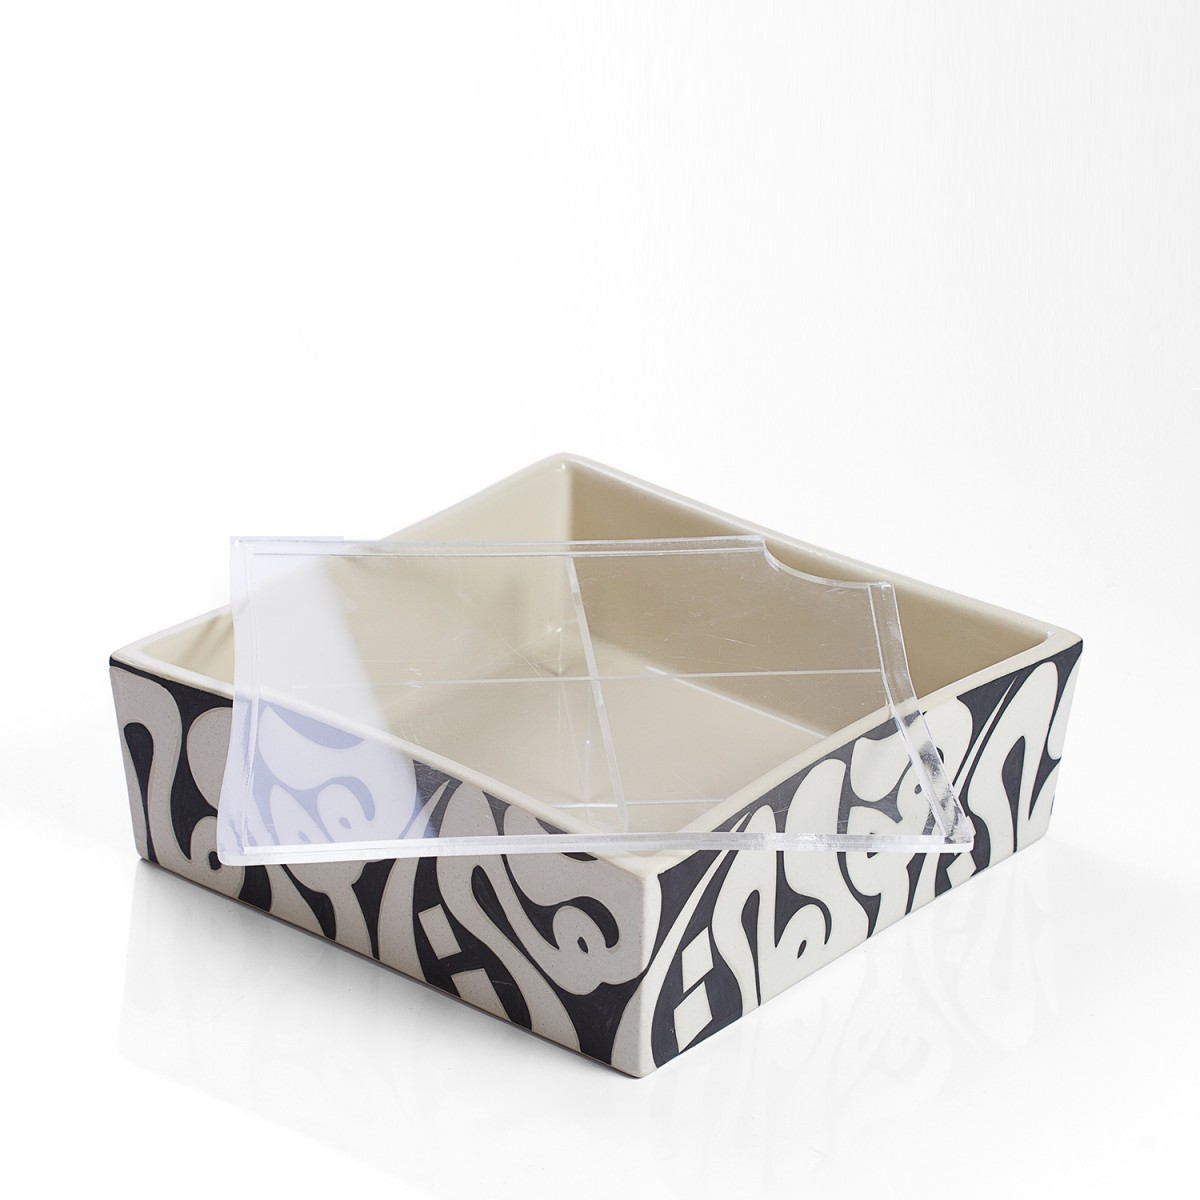 Black/White Small Cubic Acrylic Dates Sweets Chocolate Box